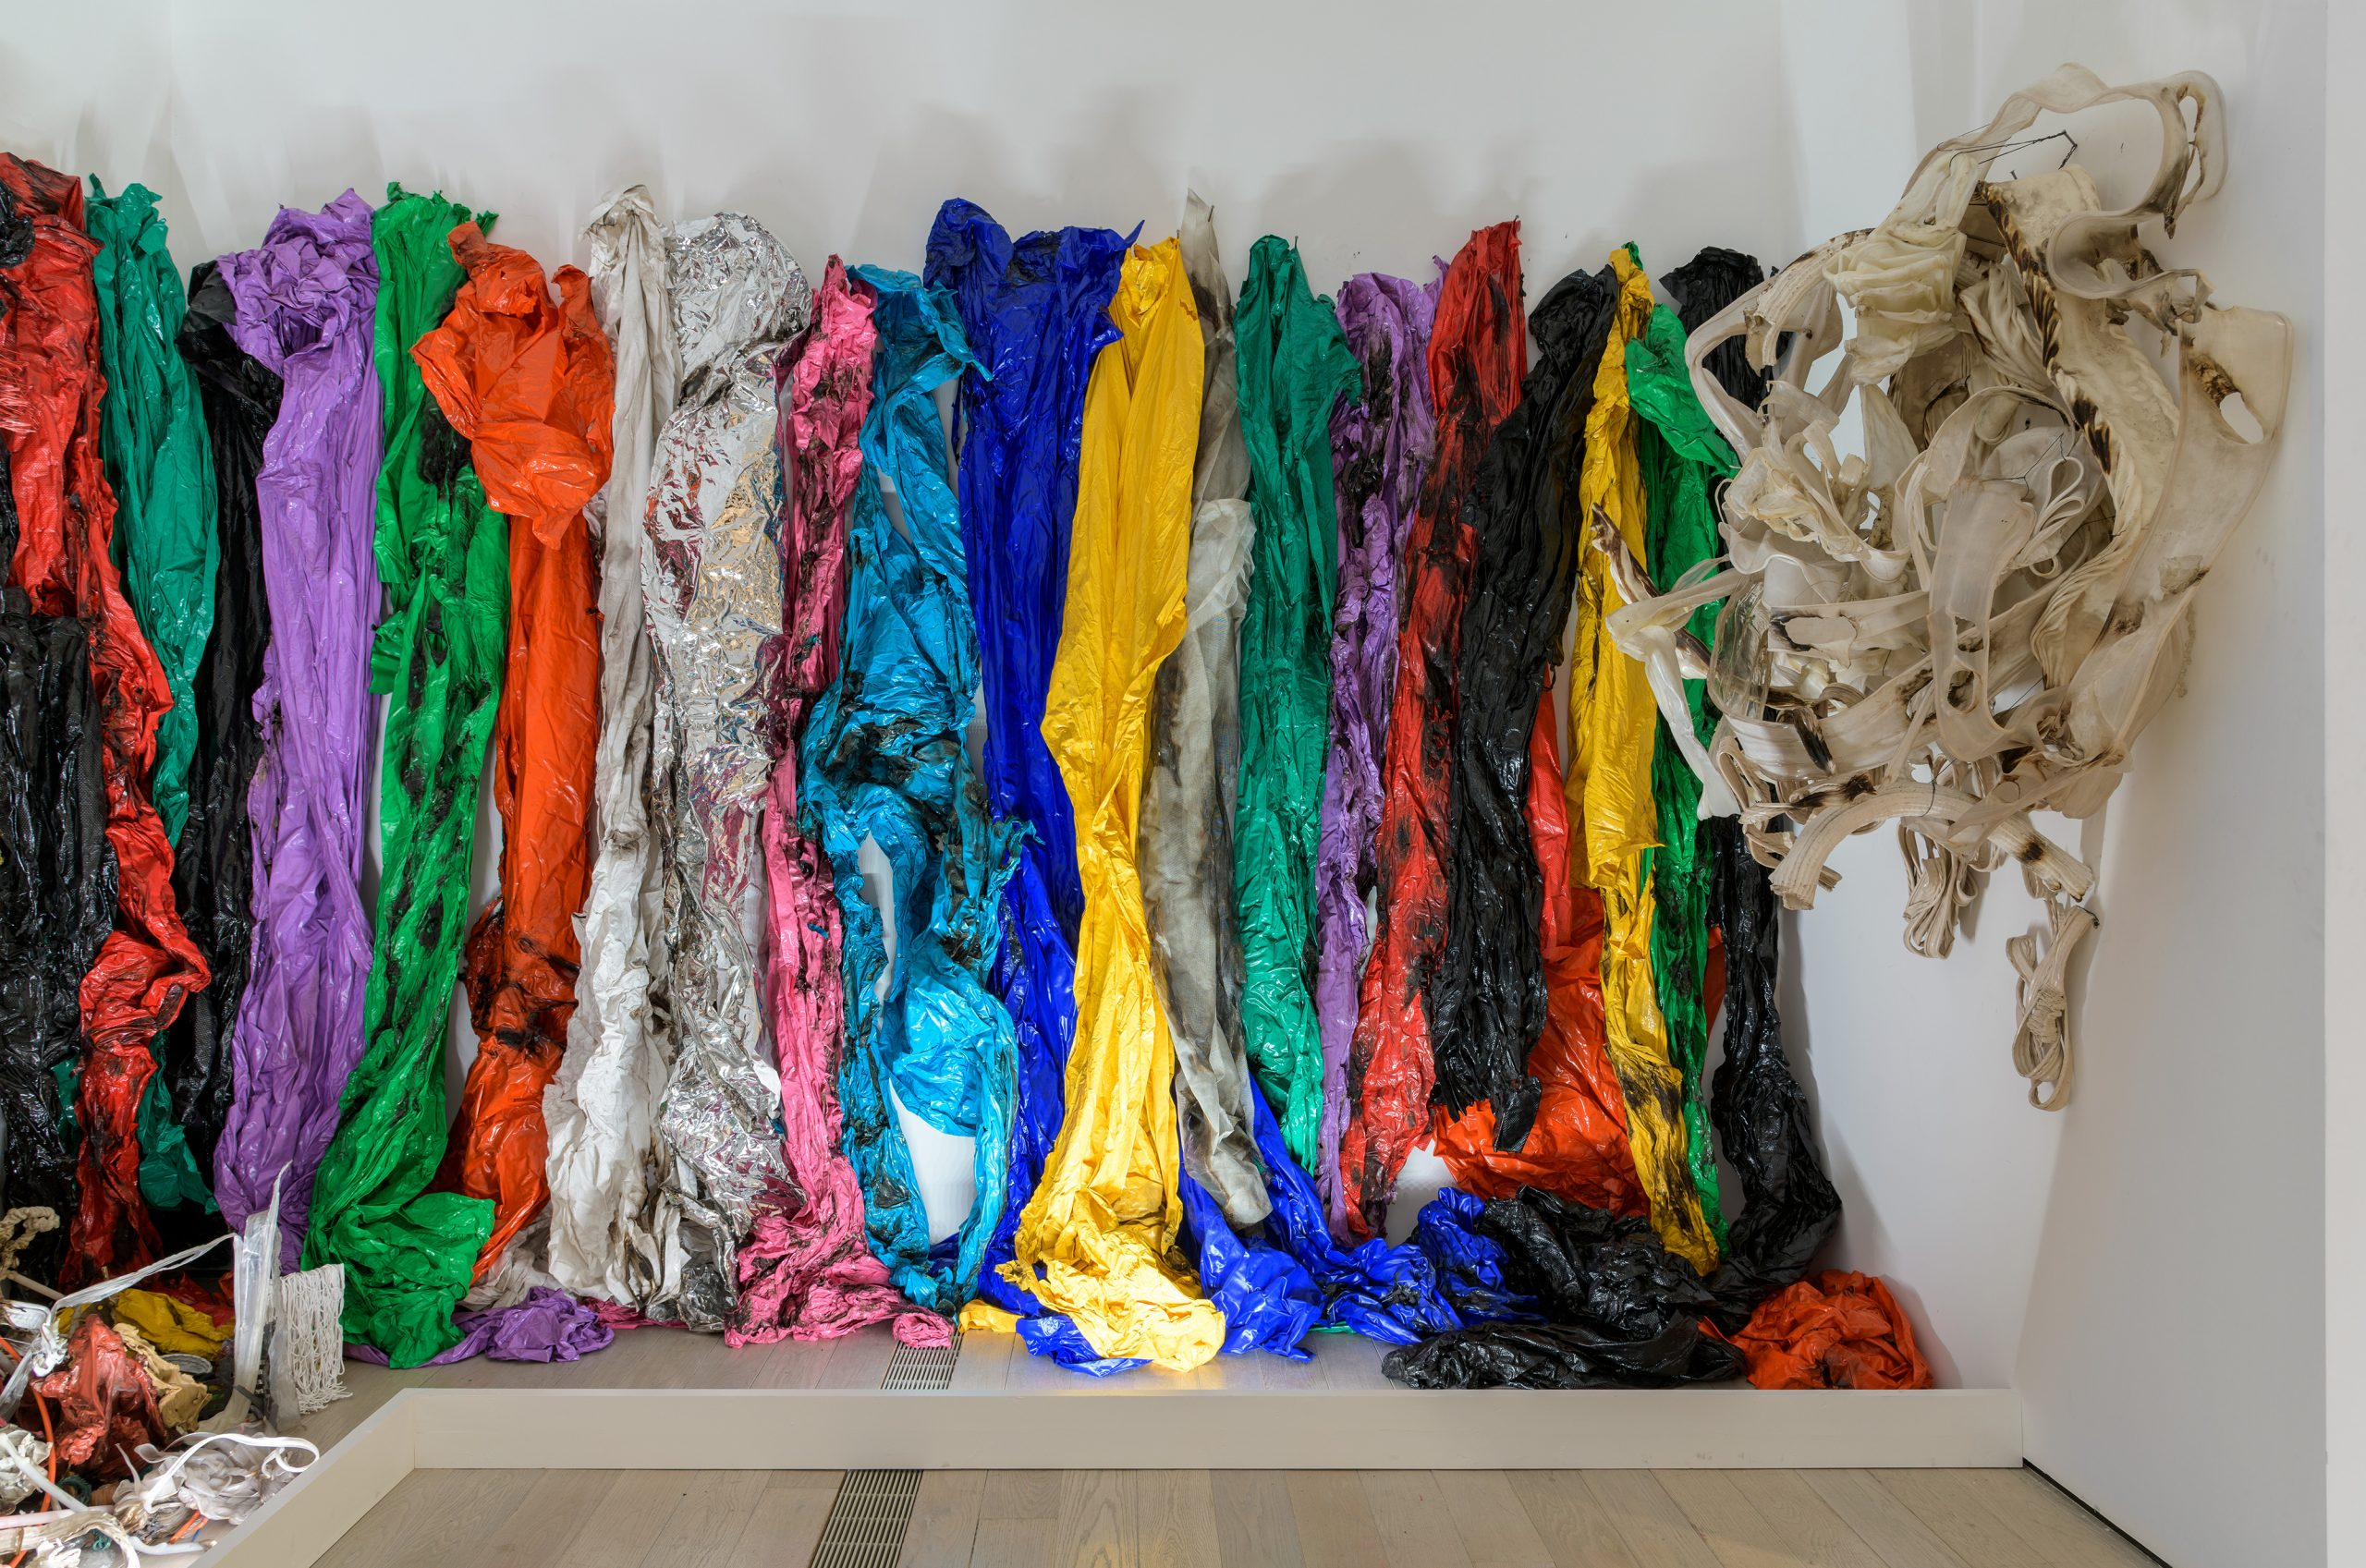 Gu Dexin, Untitled, 1989, Melted and adjoined plastic, 126 x 314 15/16 in. (320 x 800 cm), Musée d'art contemporain de Lyon. Photo © Museum Associates/ LACMA